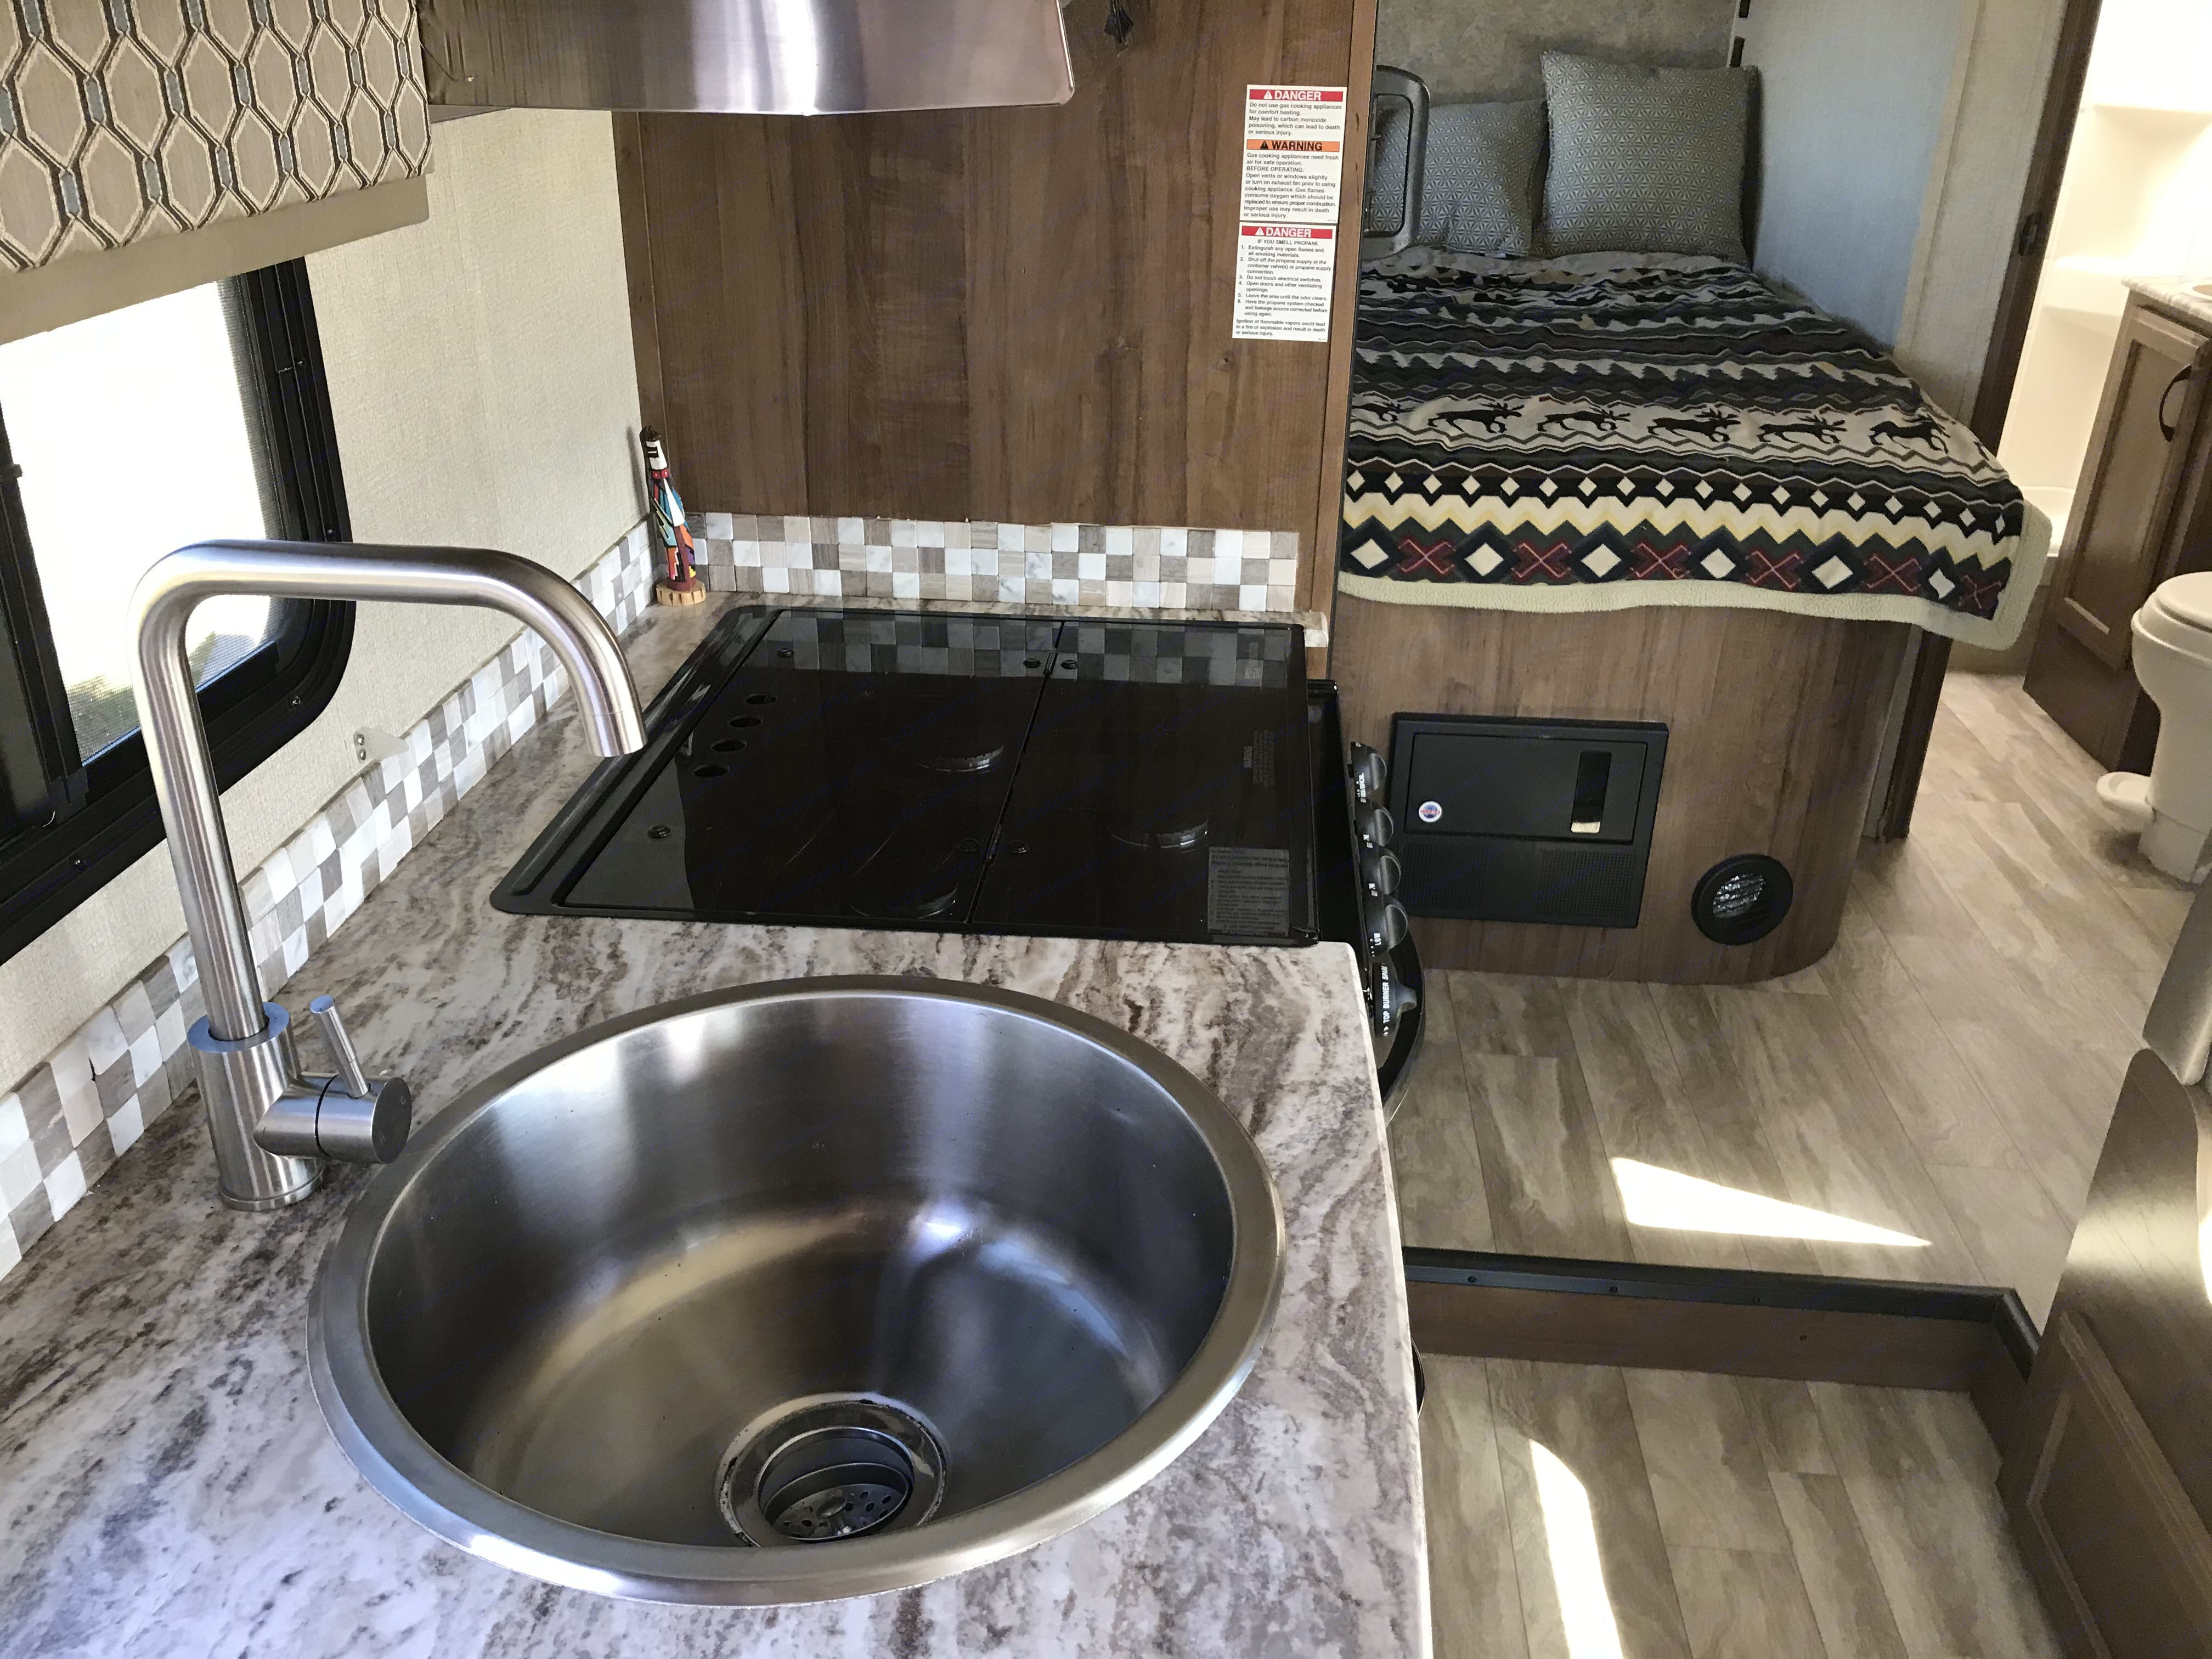 3 burner gas stove, good size sink to clean up. . Gulf Stream Conquest 2019